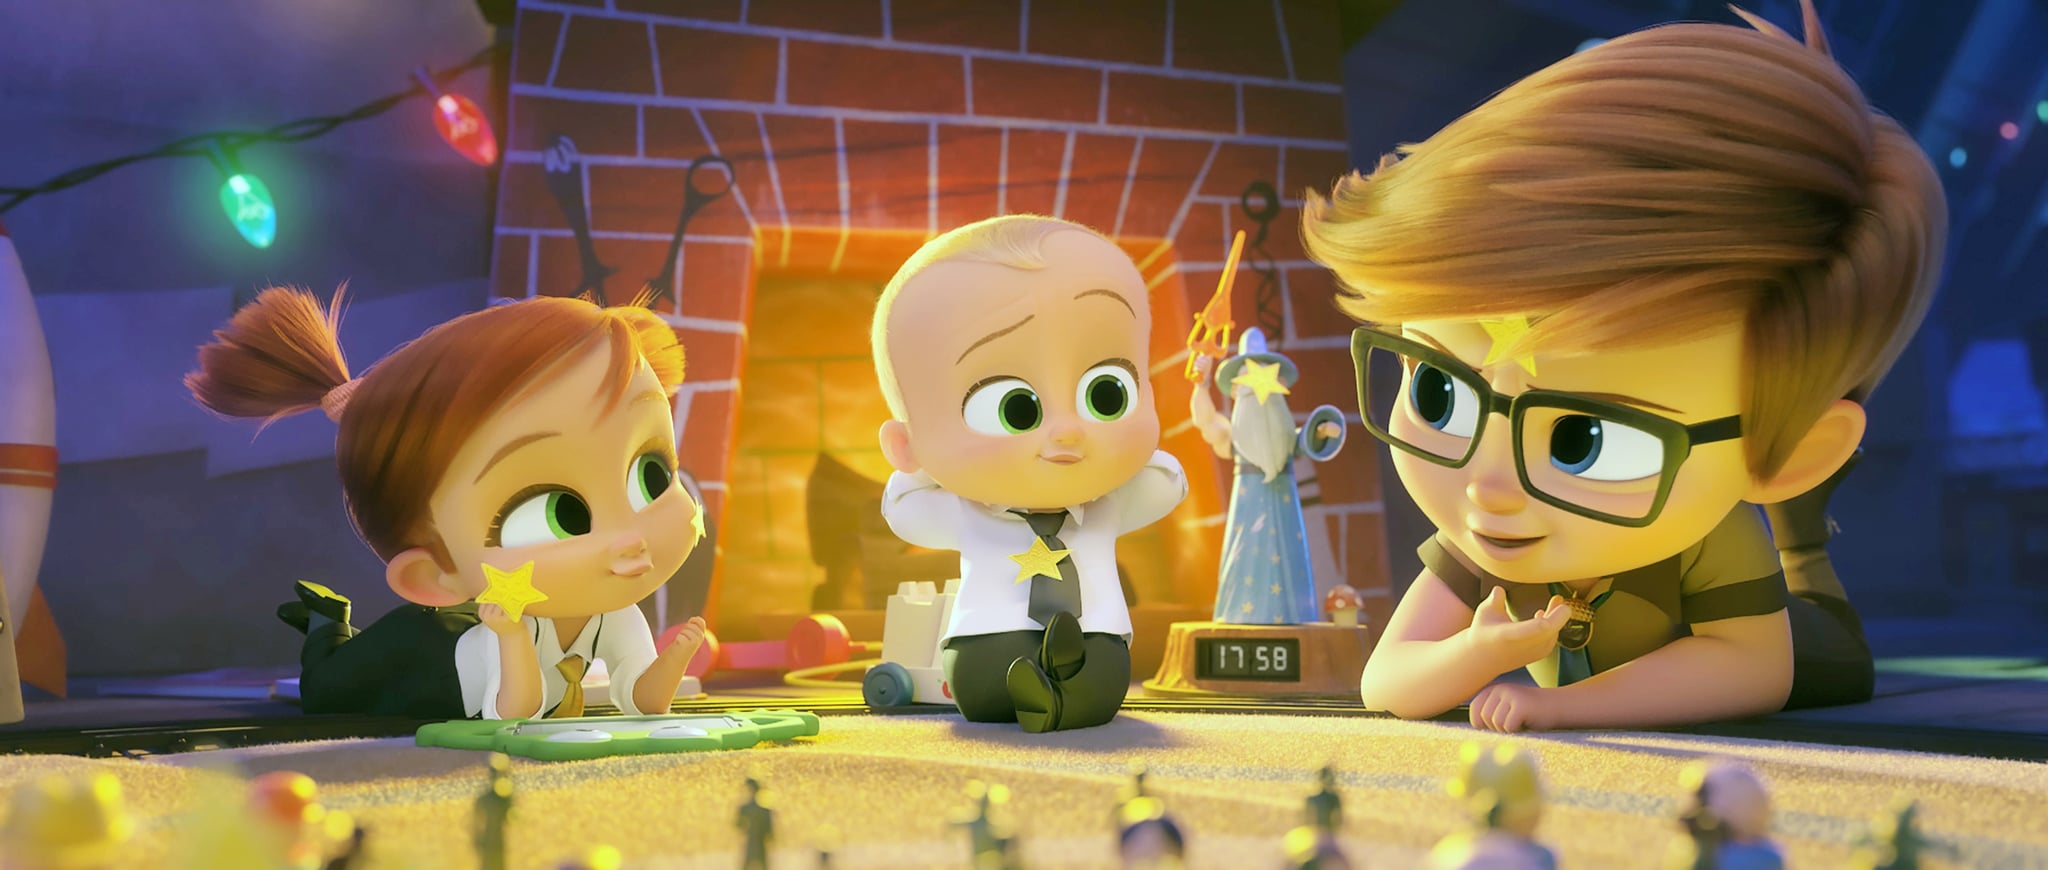 THE BOSS BABY: FAMILY BUSINESS, (aka THE BOSS BABY 2), from left: Tina Templeton (voice: Amy Sedaris), Theodore Templeton (voice: Alec Baldwin), Tim Templeton (voice: James Marsden), 2021.  Universal Pictures / courtesy Everett Collection